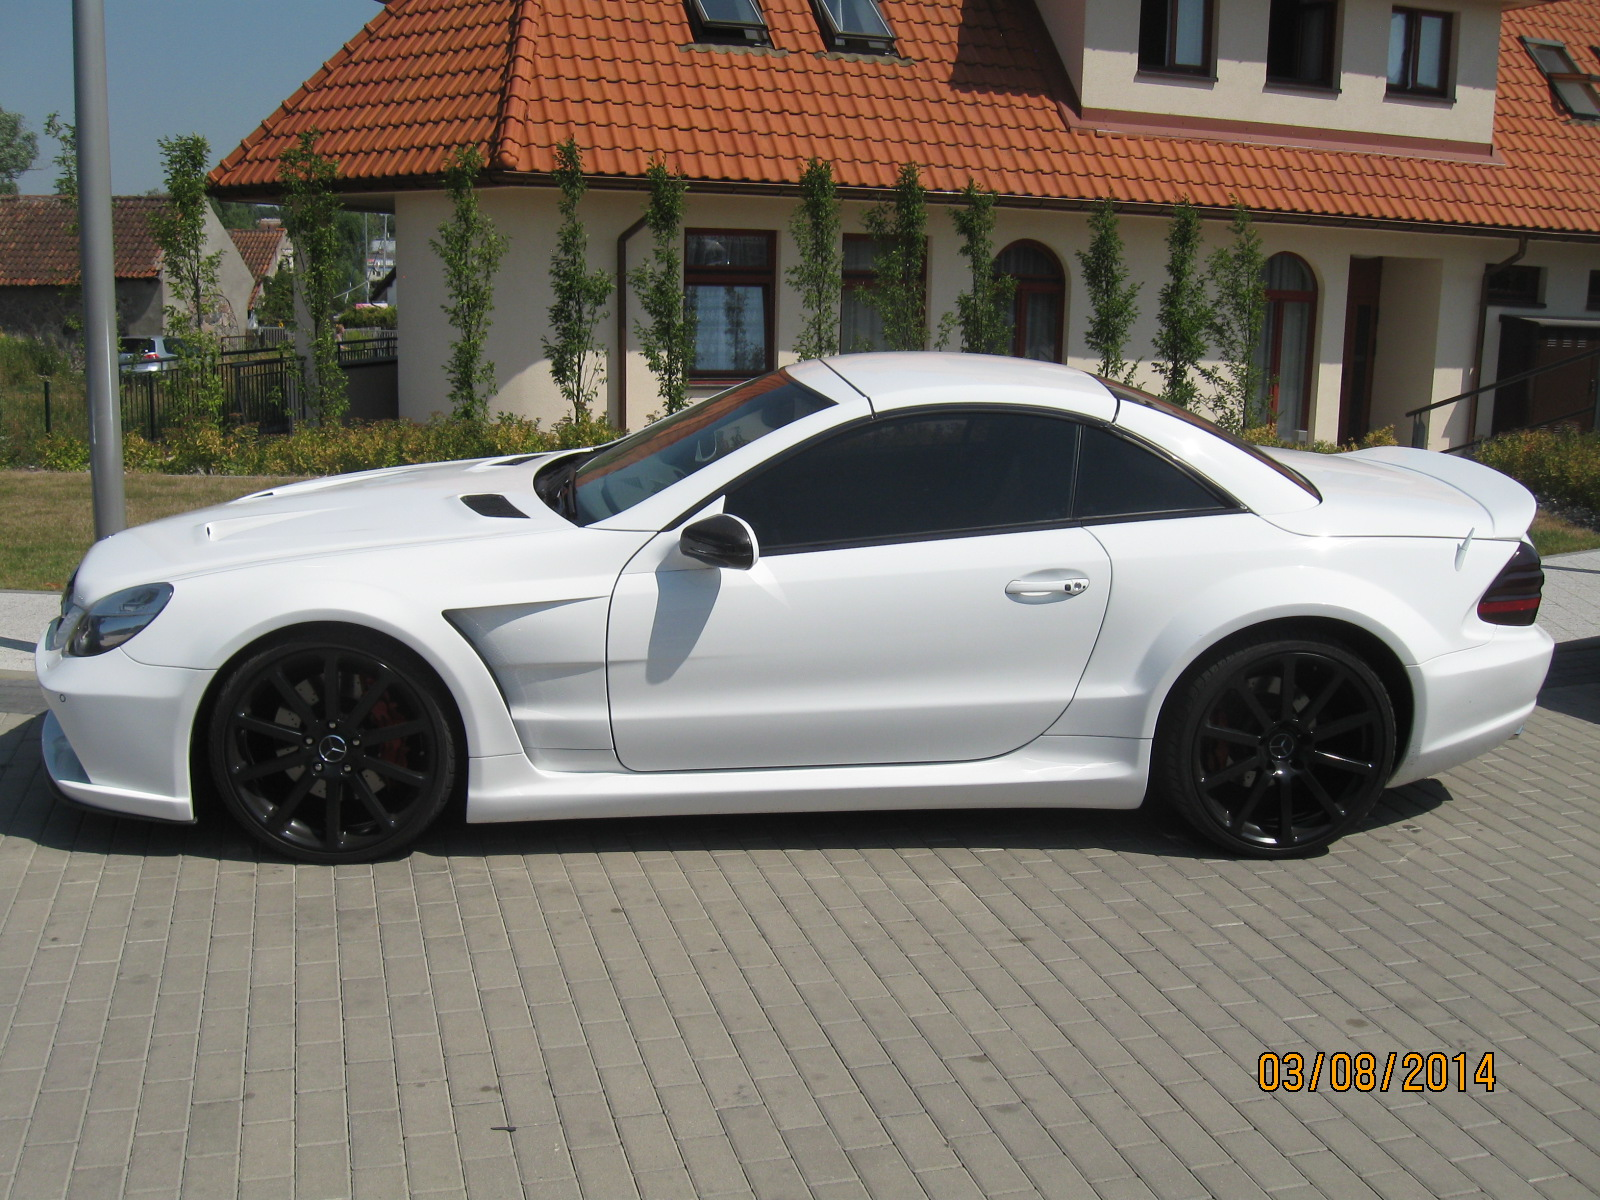 http://124coupe.pl/hosting/images/img3002.jpg